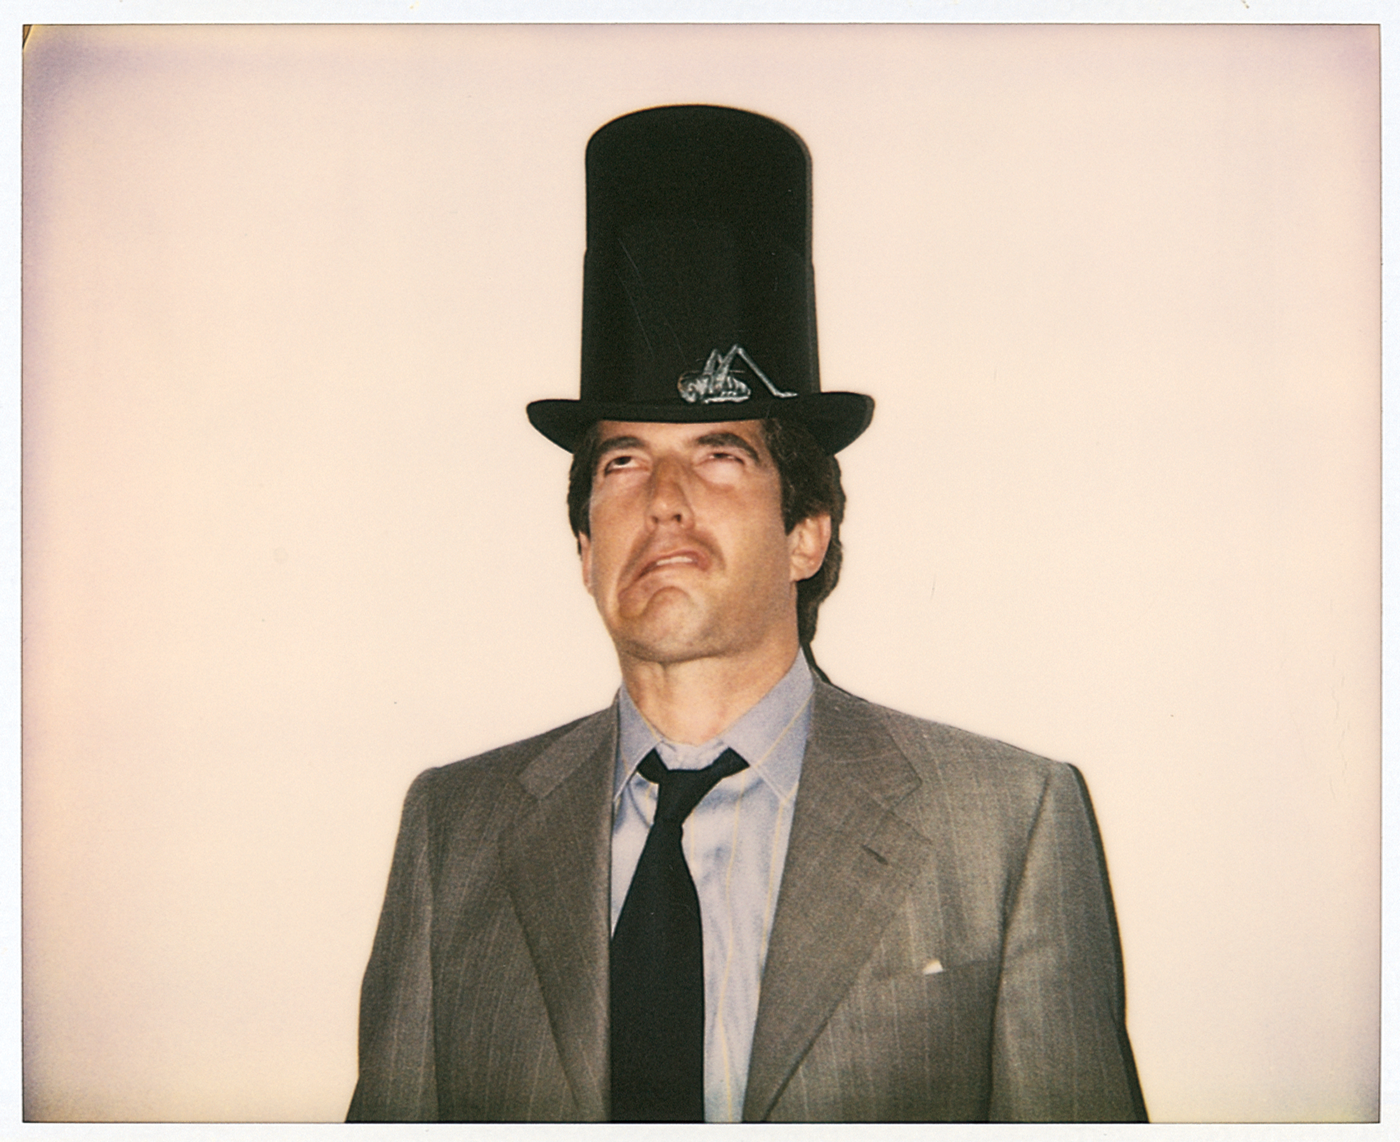 Kennedy goofs around with an Abraham Lincoln-inspired top hat at the George offices in a photo taken by his creative director Matt Berman. Kennedy's former colleagues describe him as funny and down to earth.